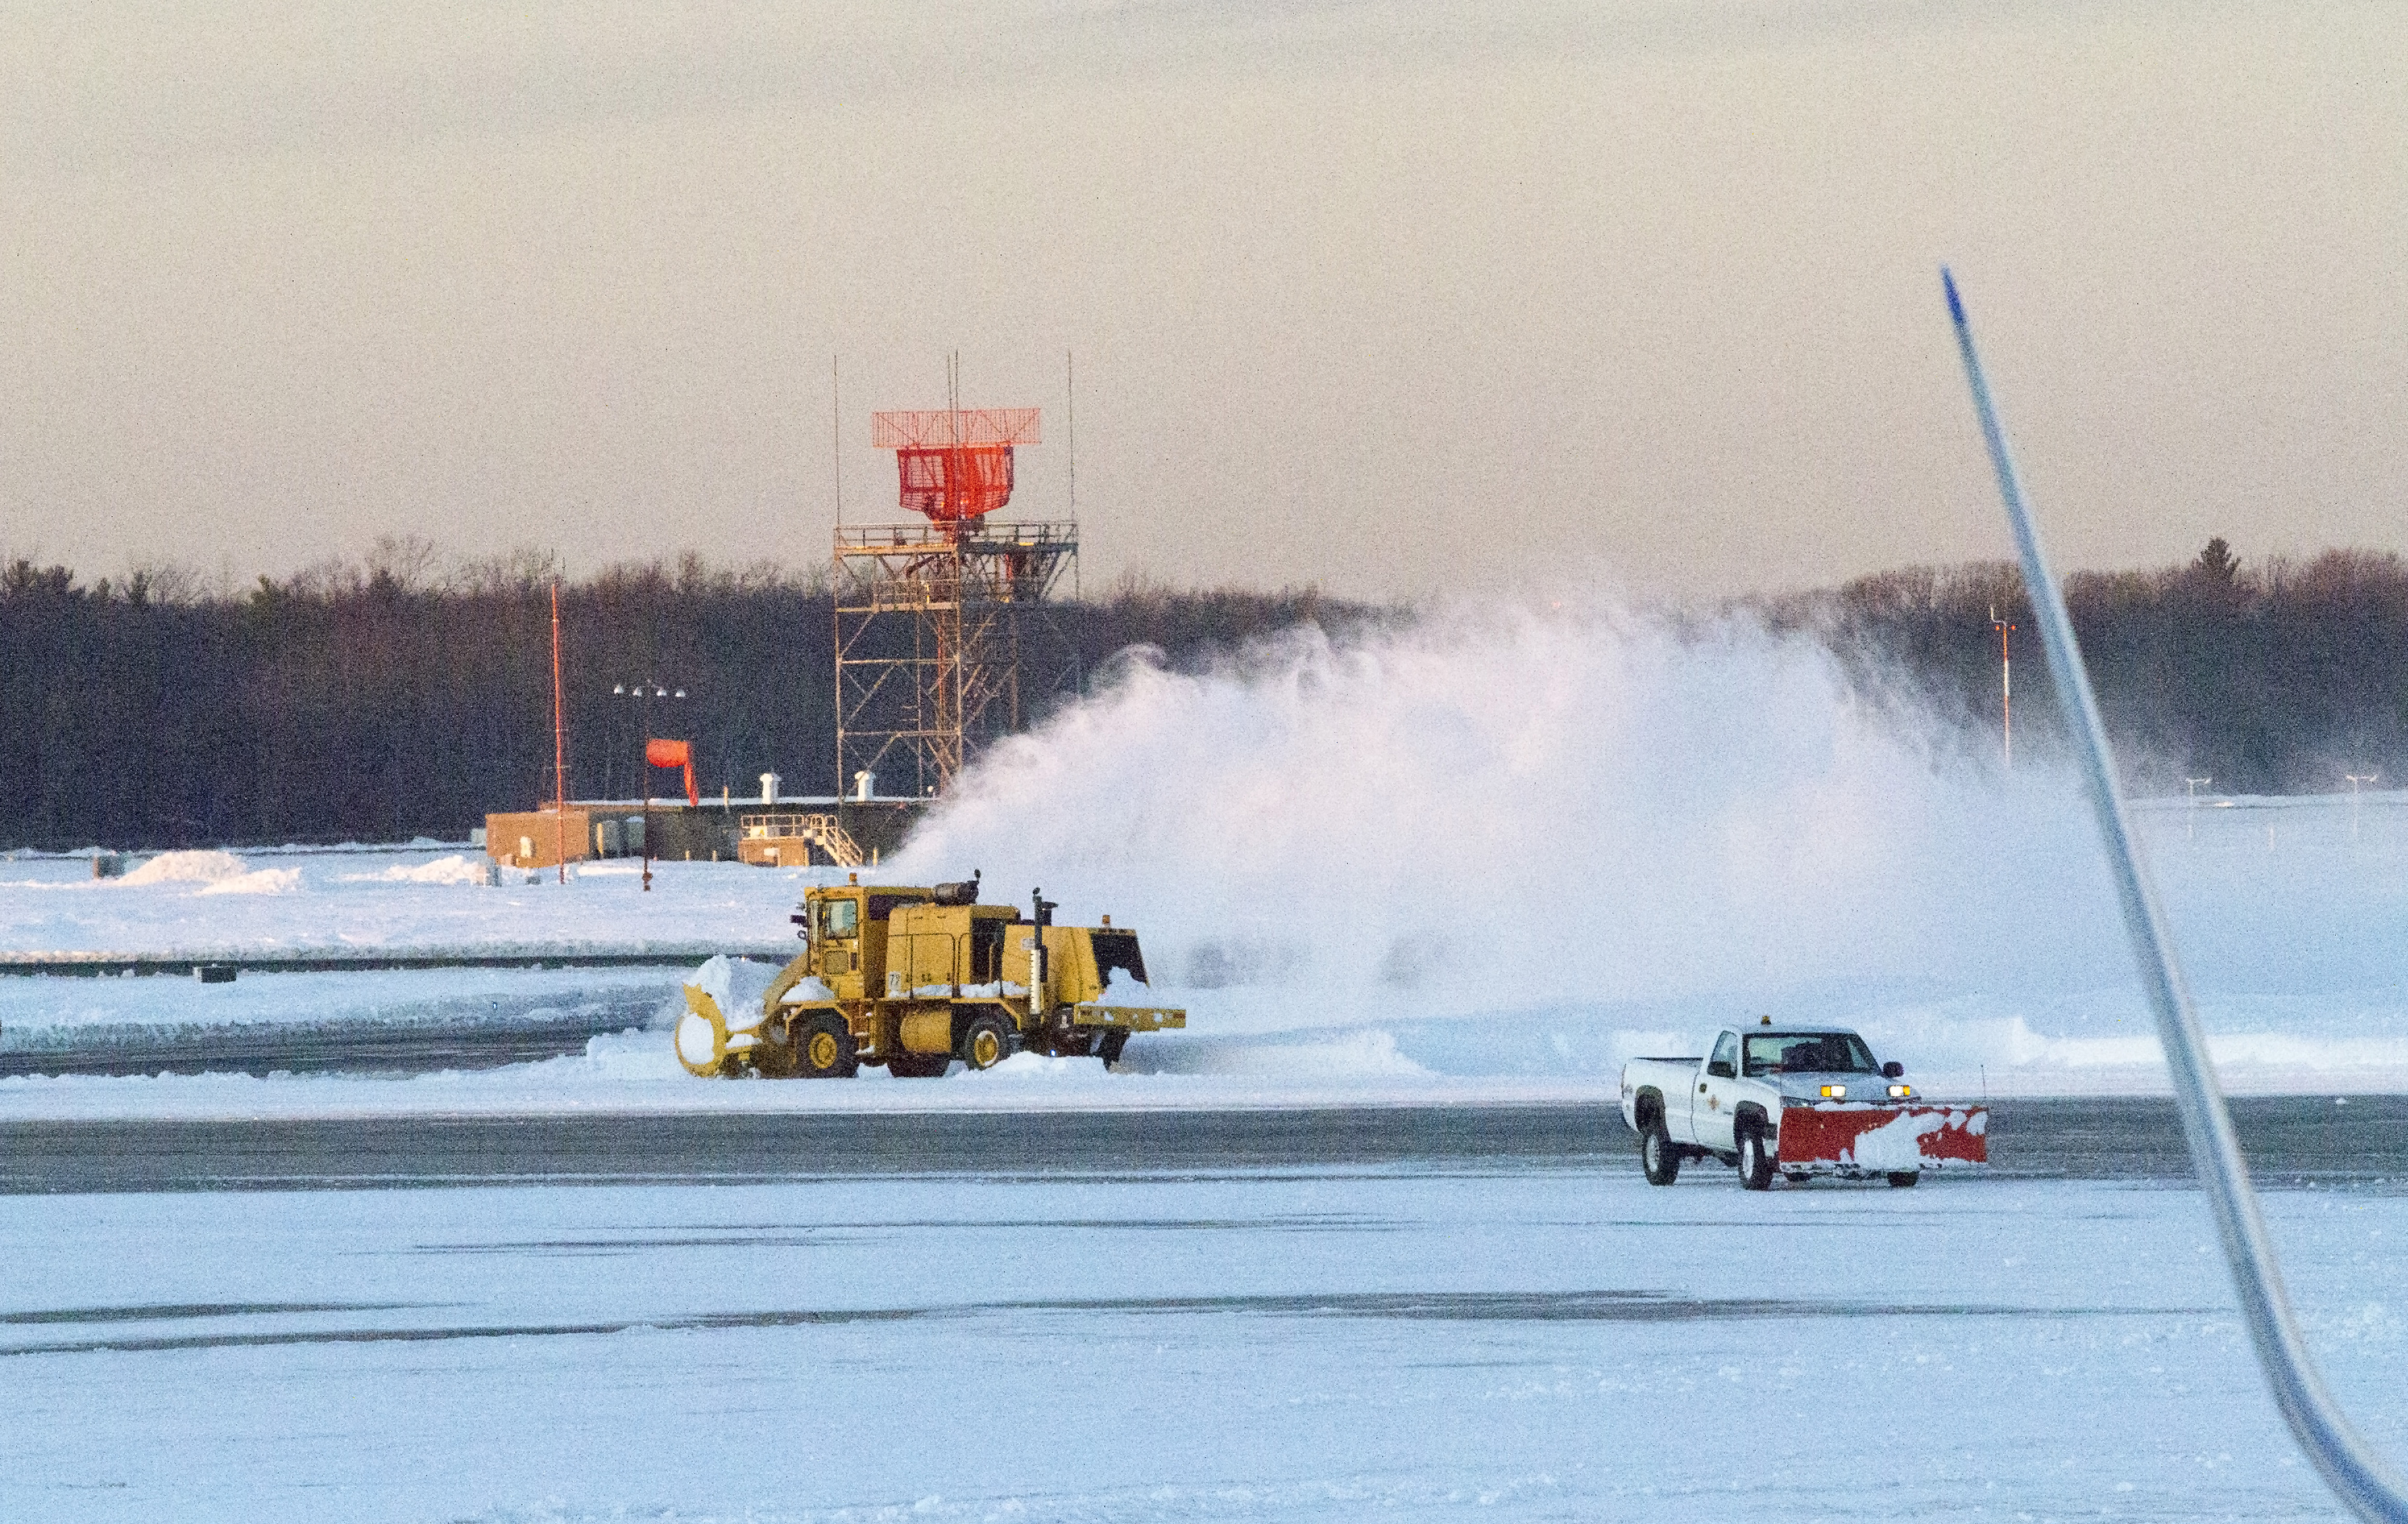 This photo, taken Feb. 10, 2013, near sunset at Bradley International Airport in Windsor Locks, Connecticut, depicts a scene nearly identical to that which unfolded exactly four years later. Jim Moore photo.